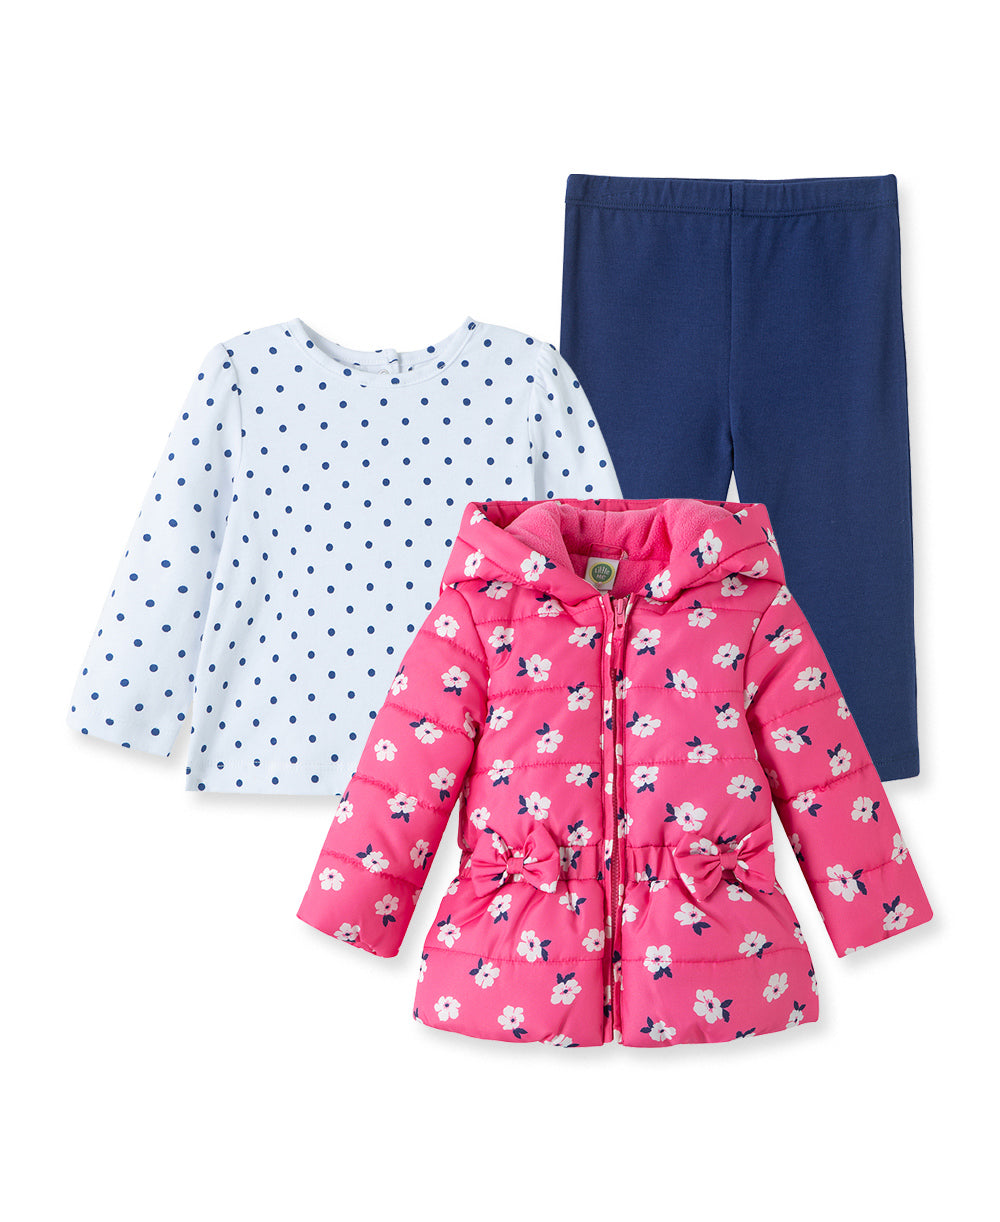 3PC Pink Flower Jacket Set